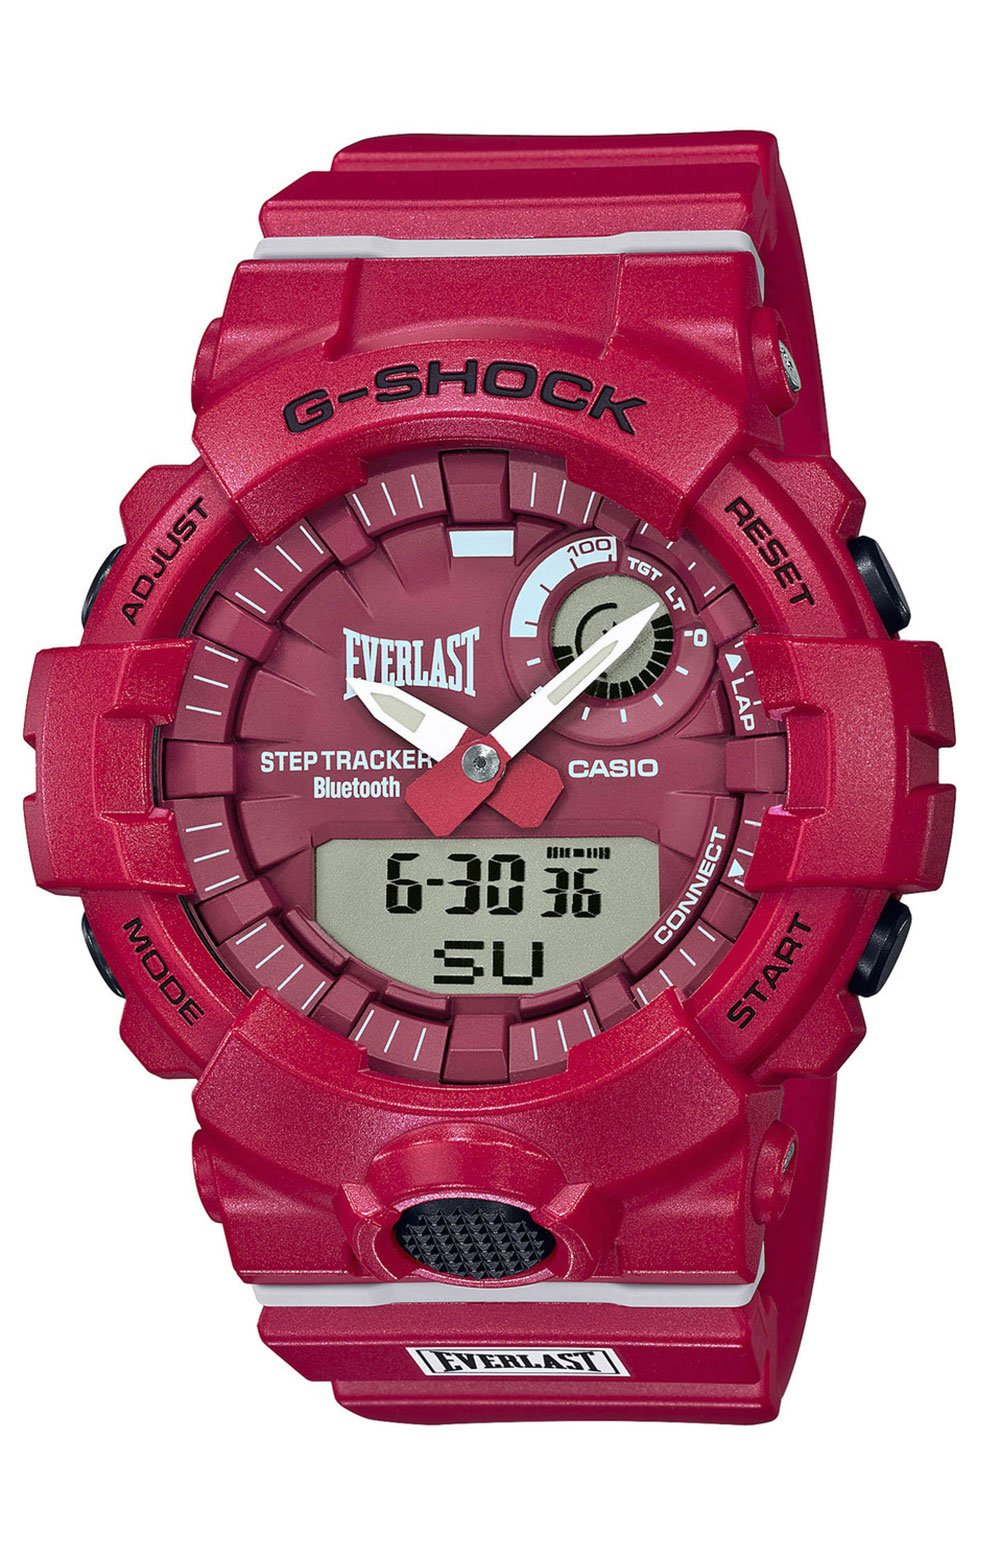 Gshock 77314 GBA800EL-4A Watch